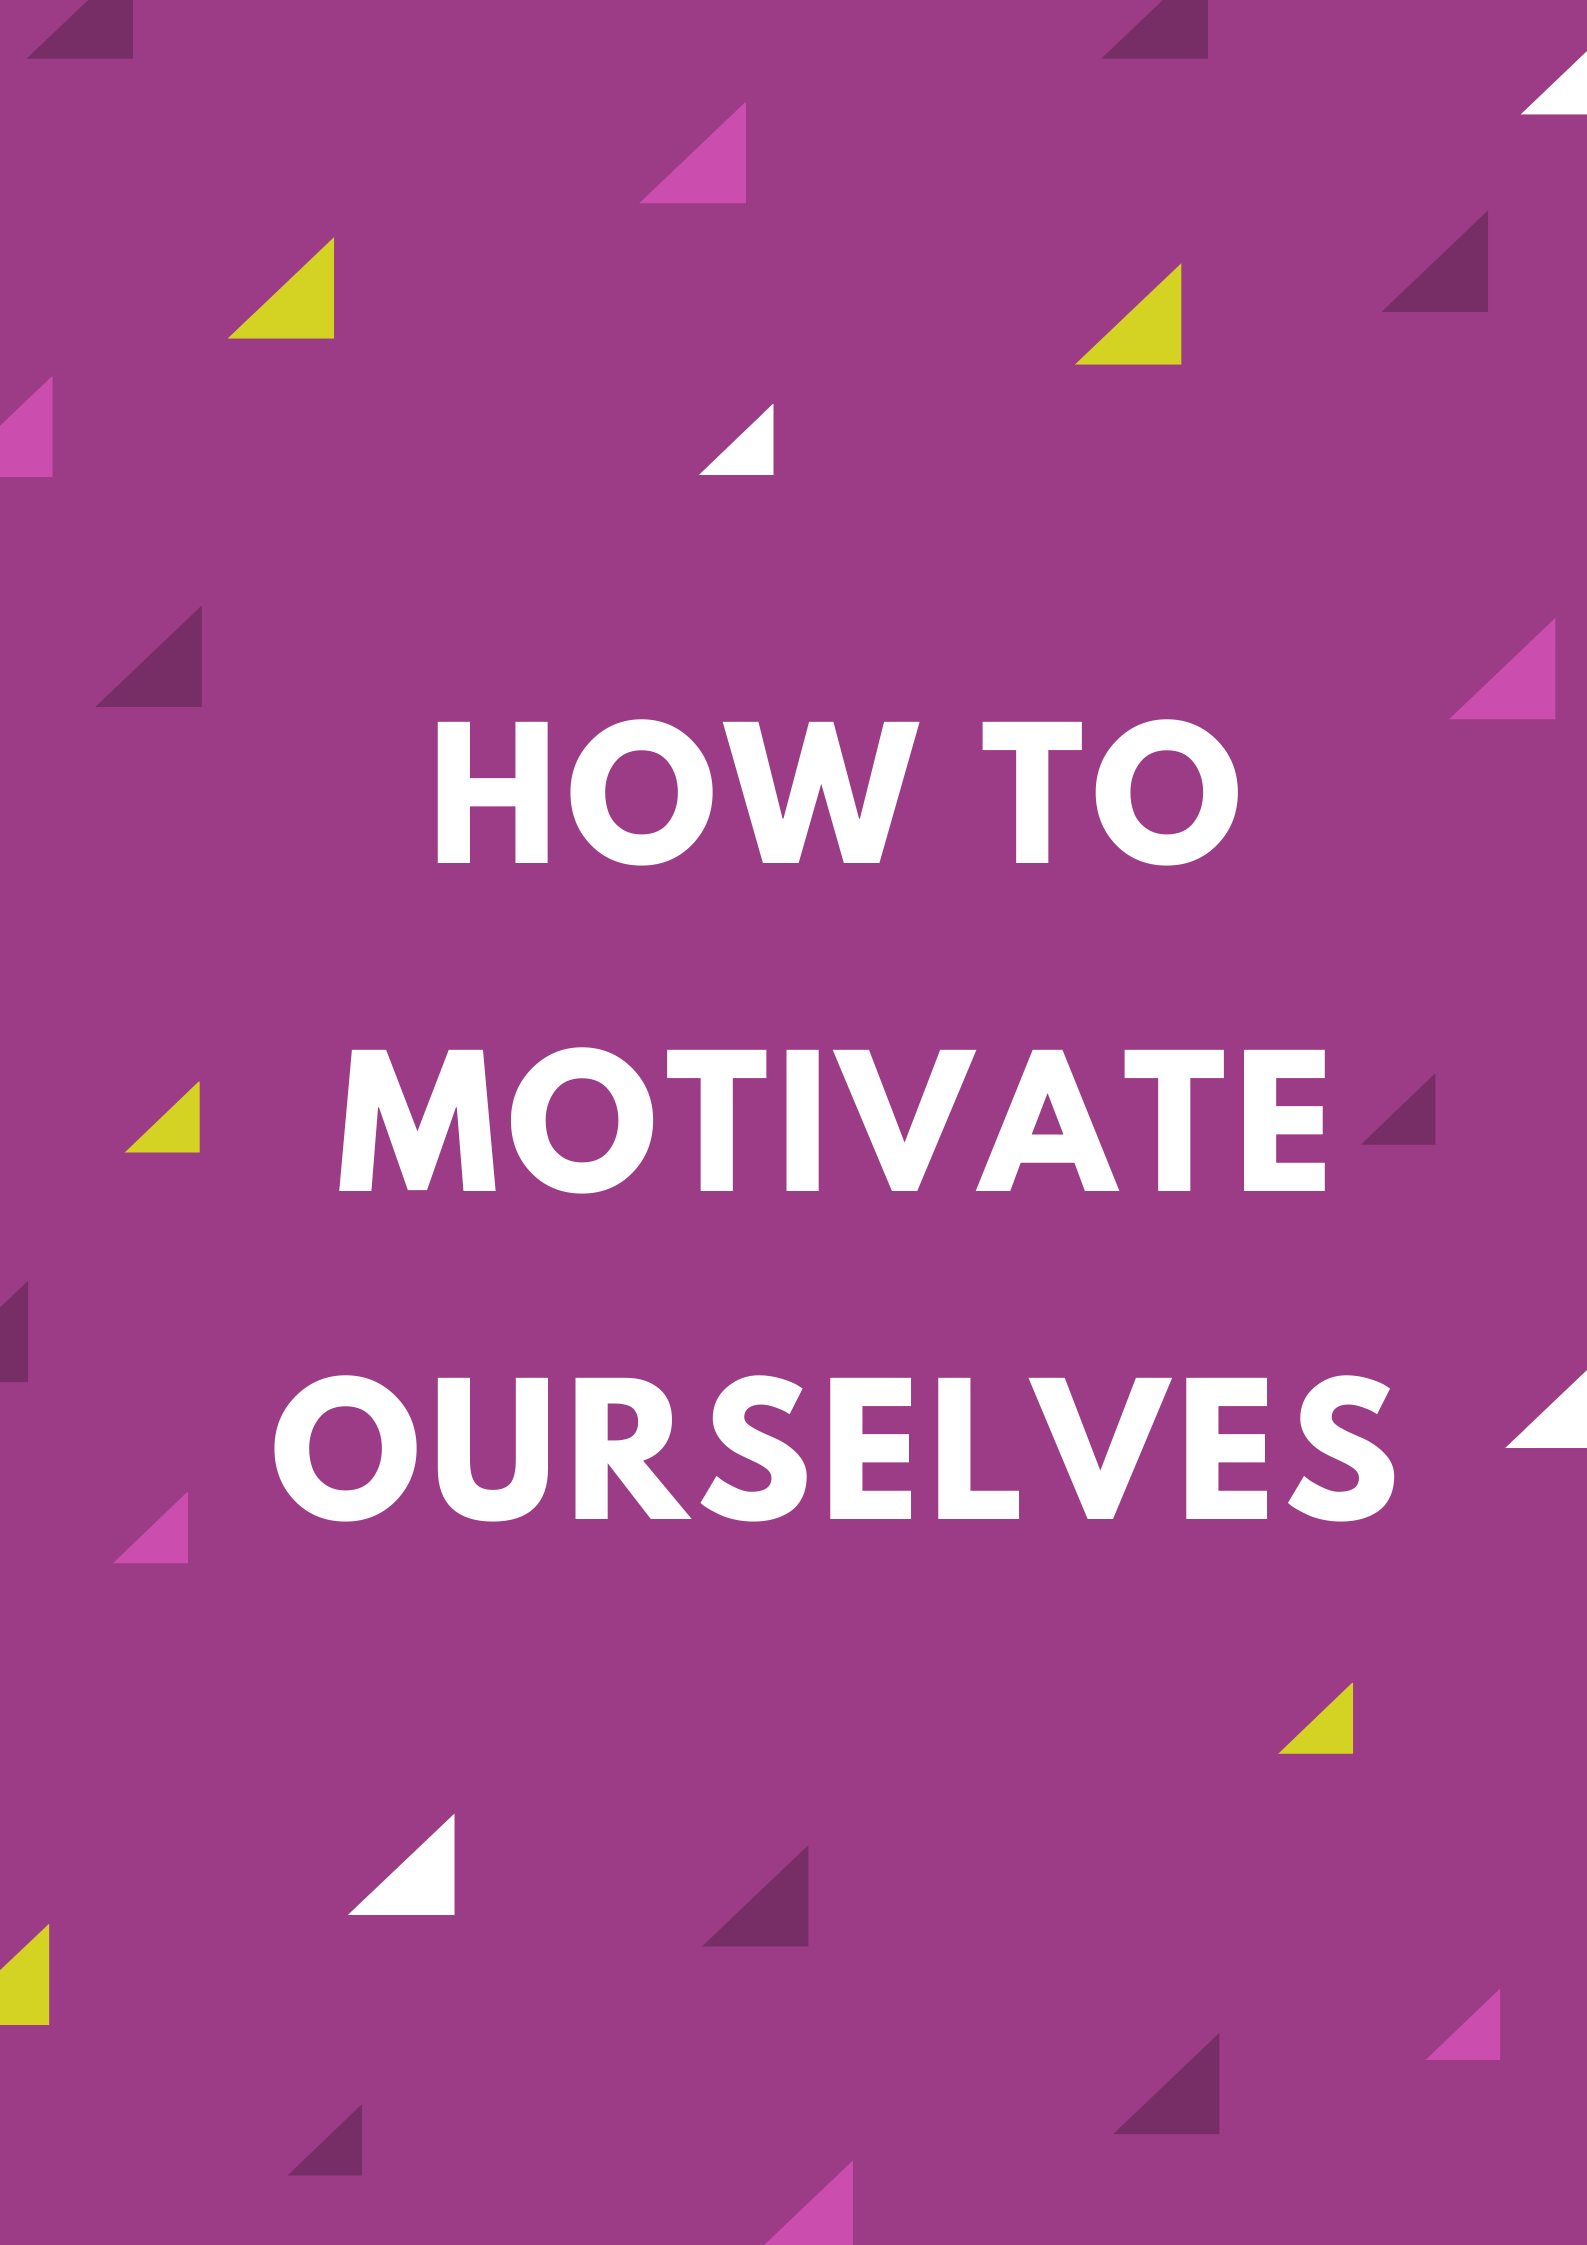 How To Motivate Ourselves.png